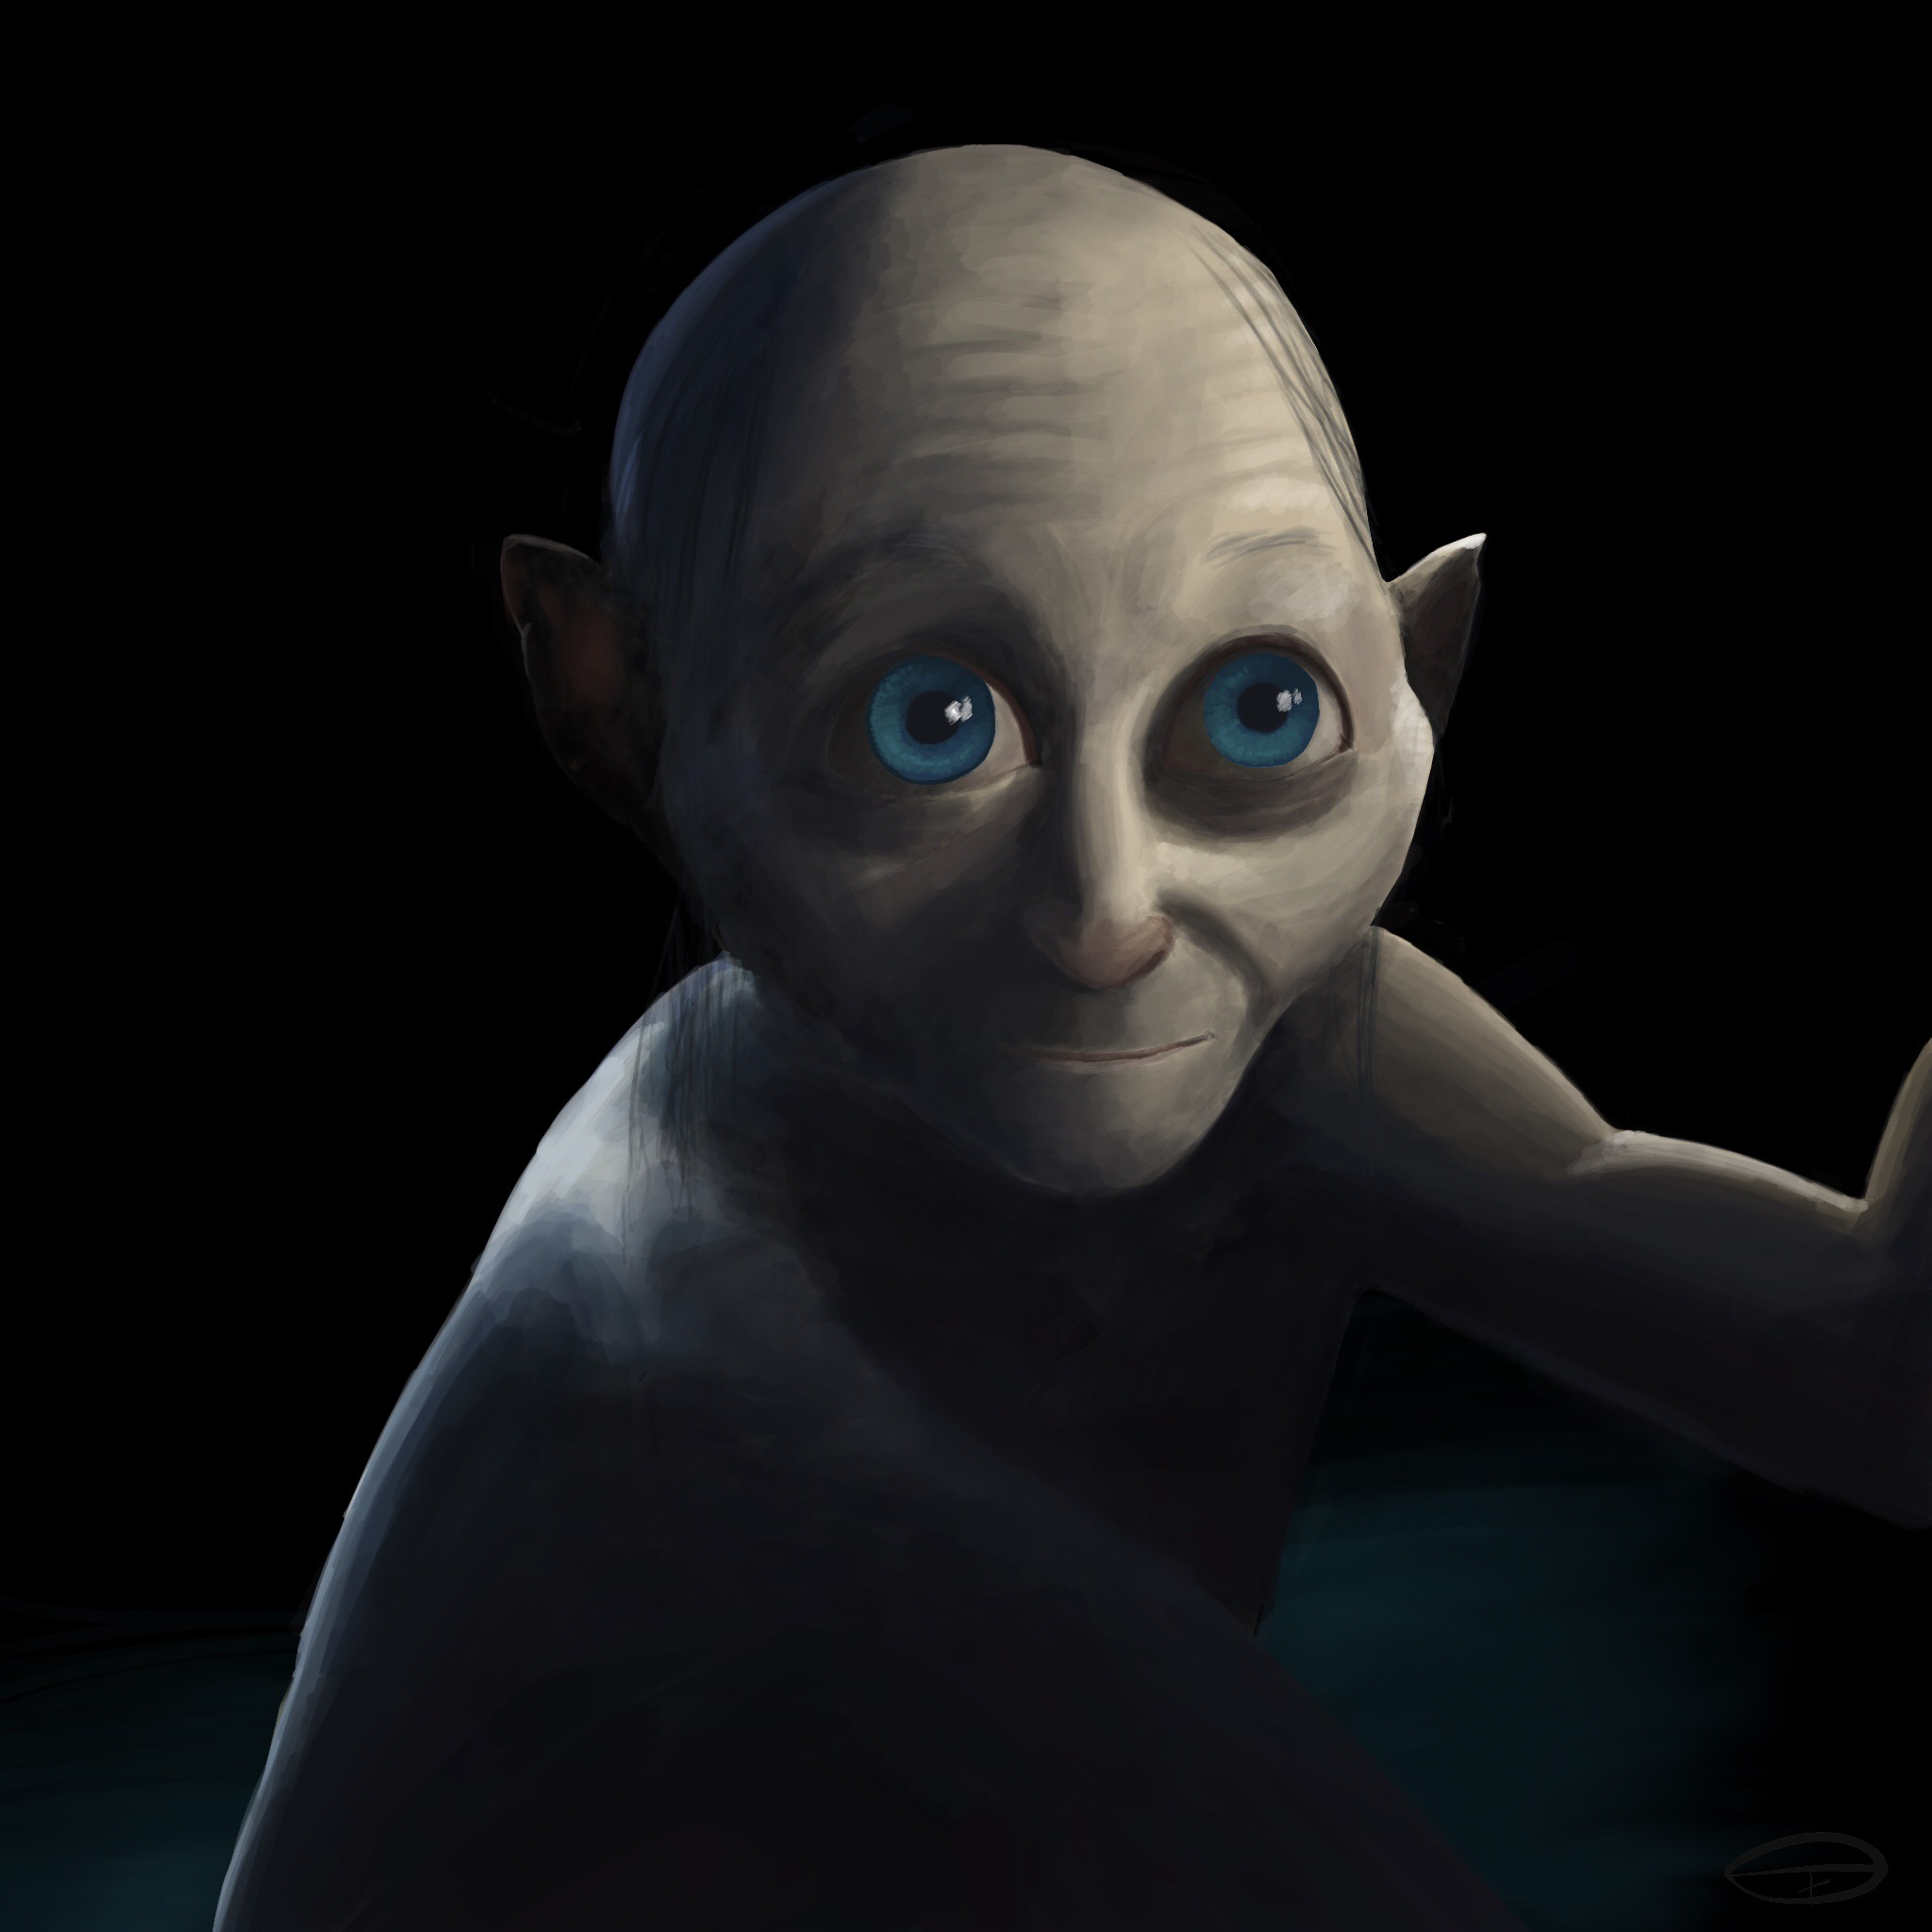 Gollum from the hobbit